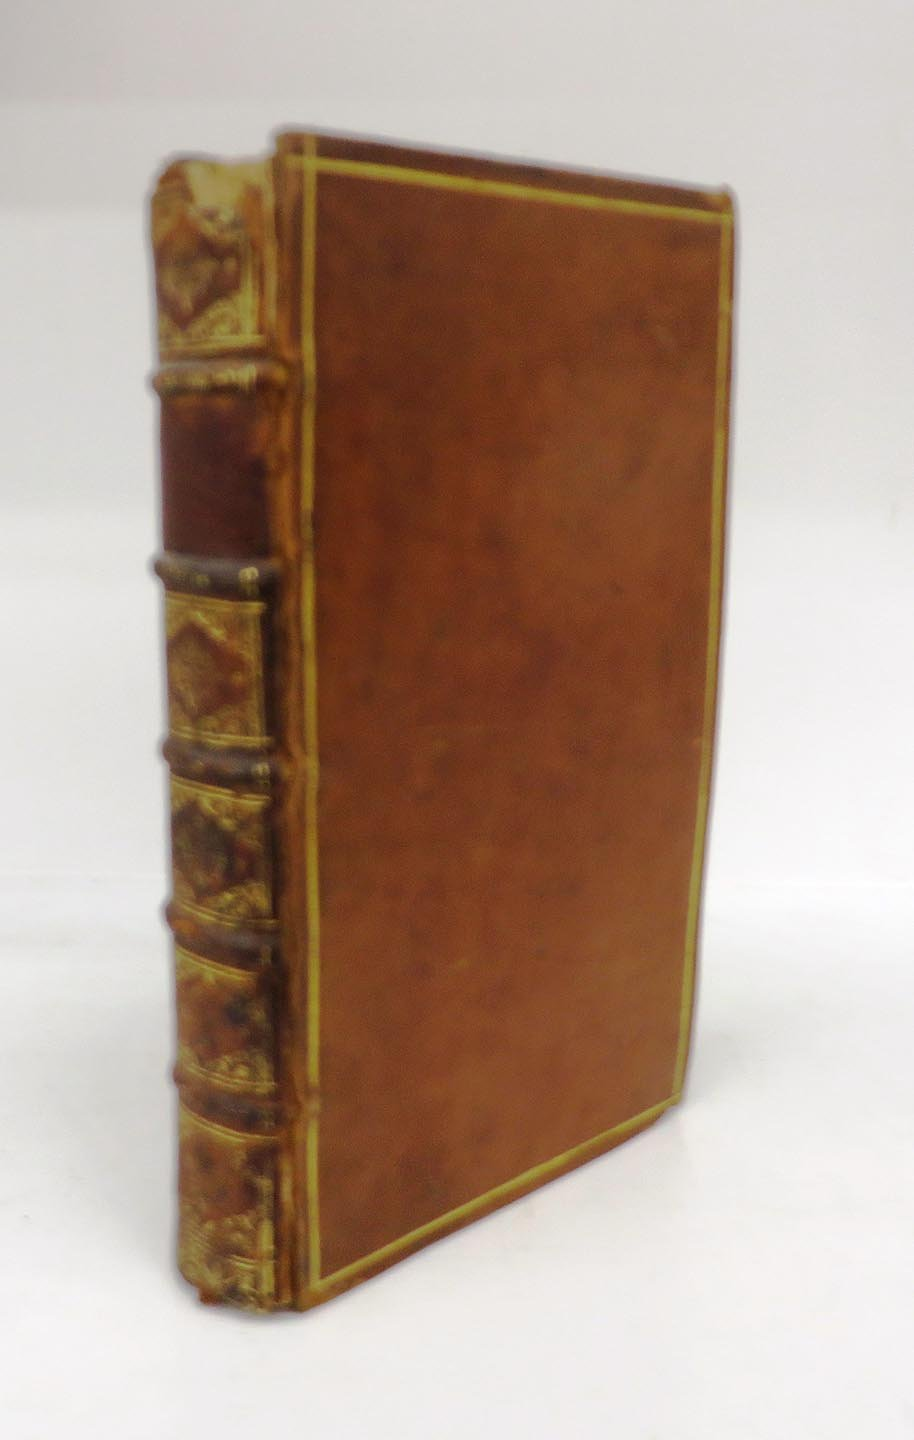 The Historical Register, Volume IX. For the year 1724